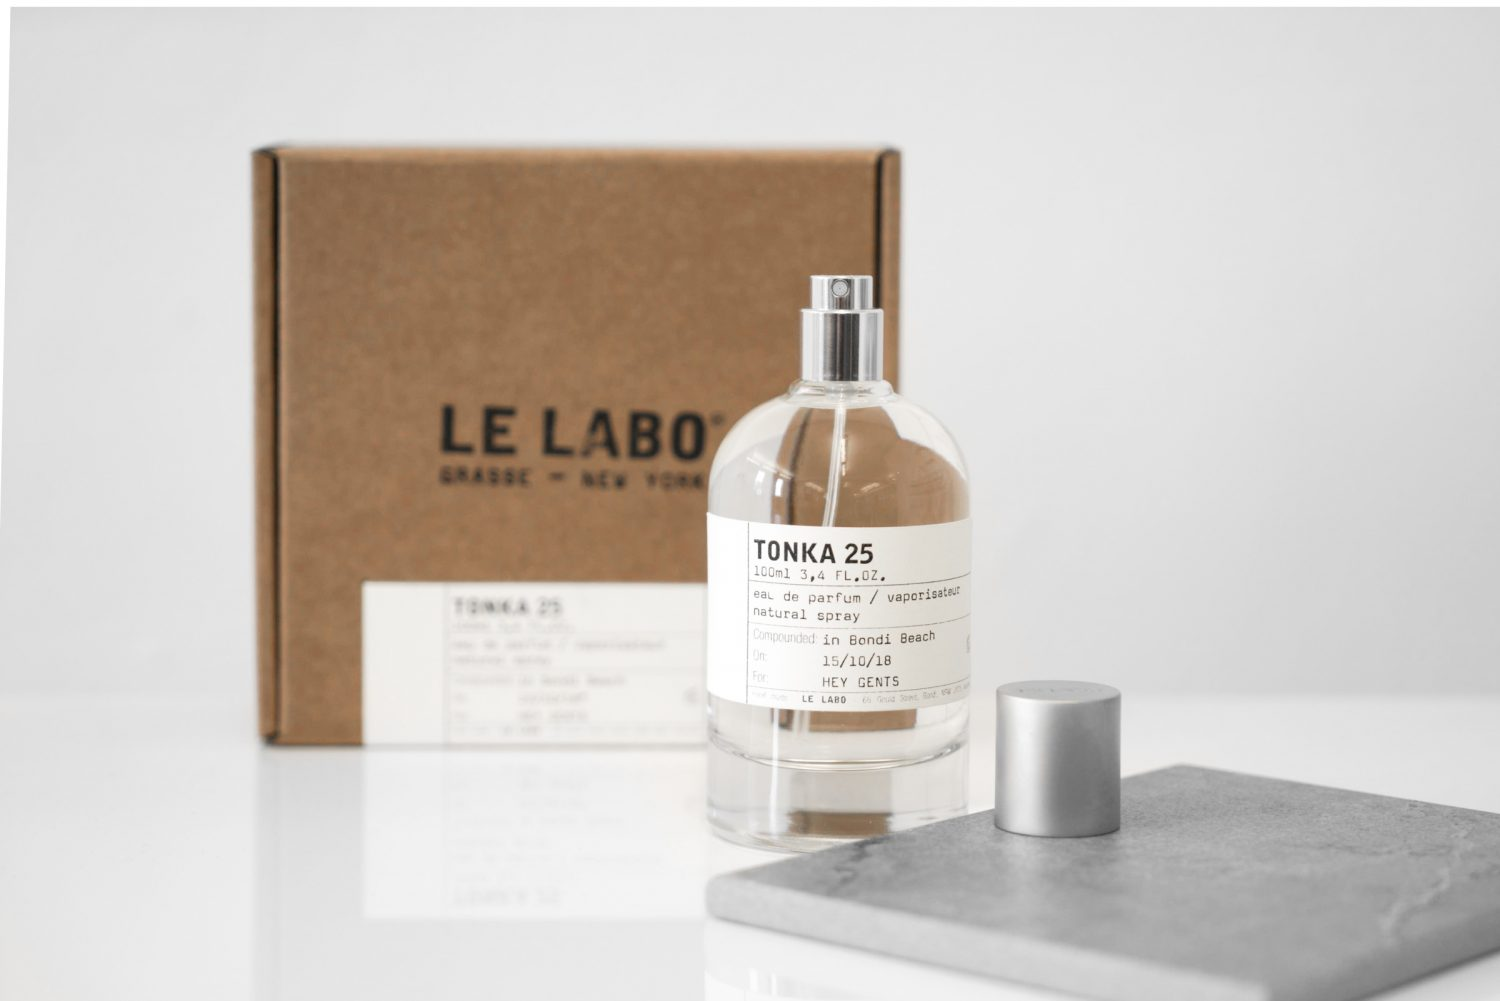 12 Things To Put on Your Christmas Wishlist - le labo